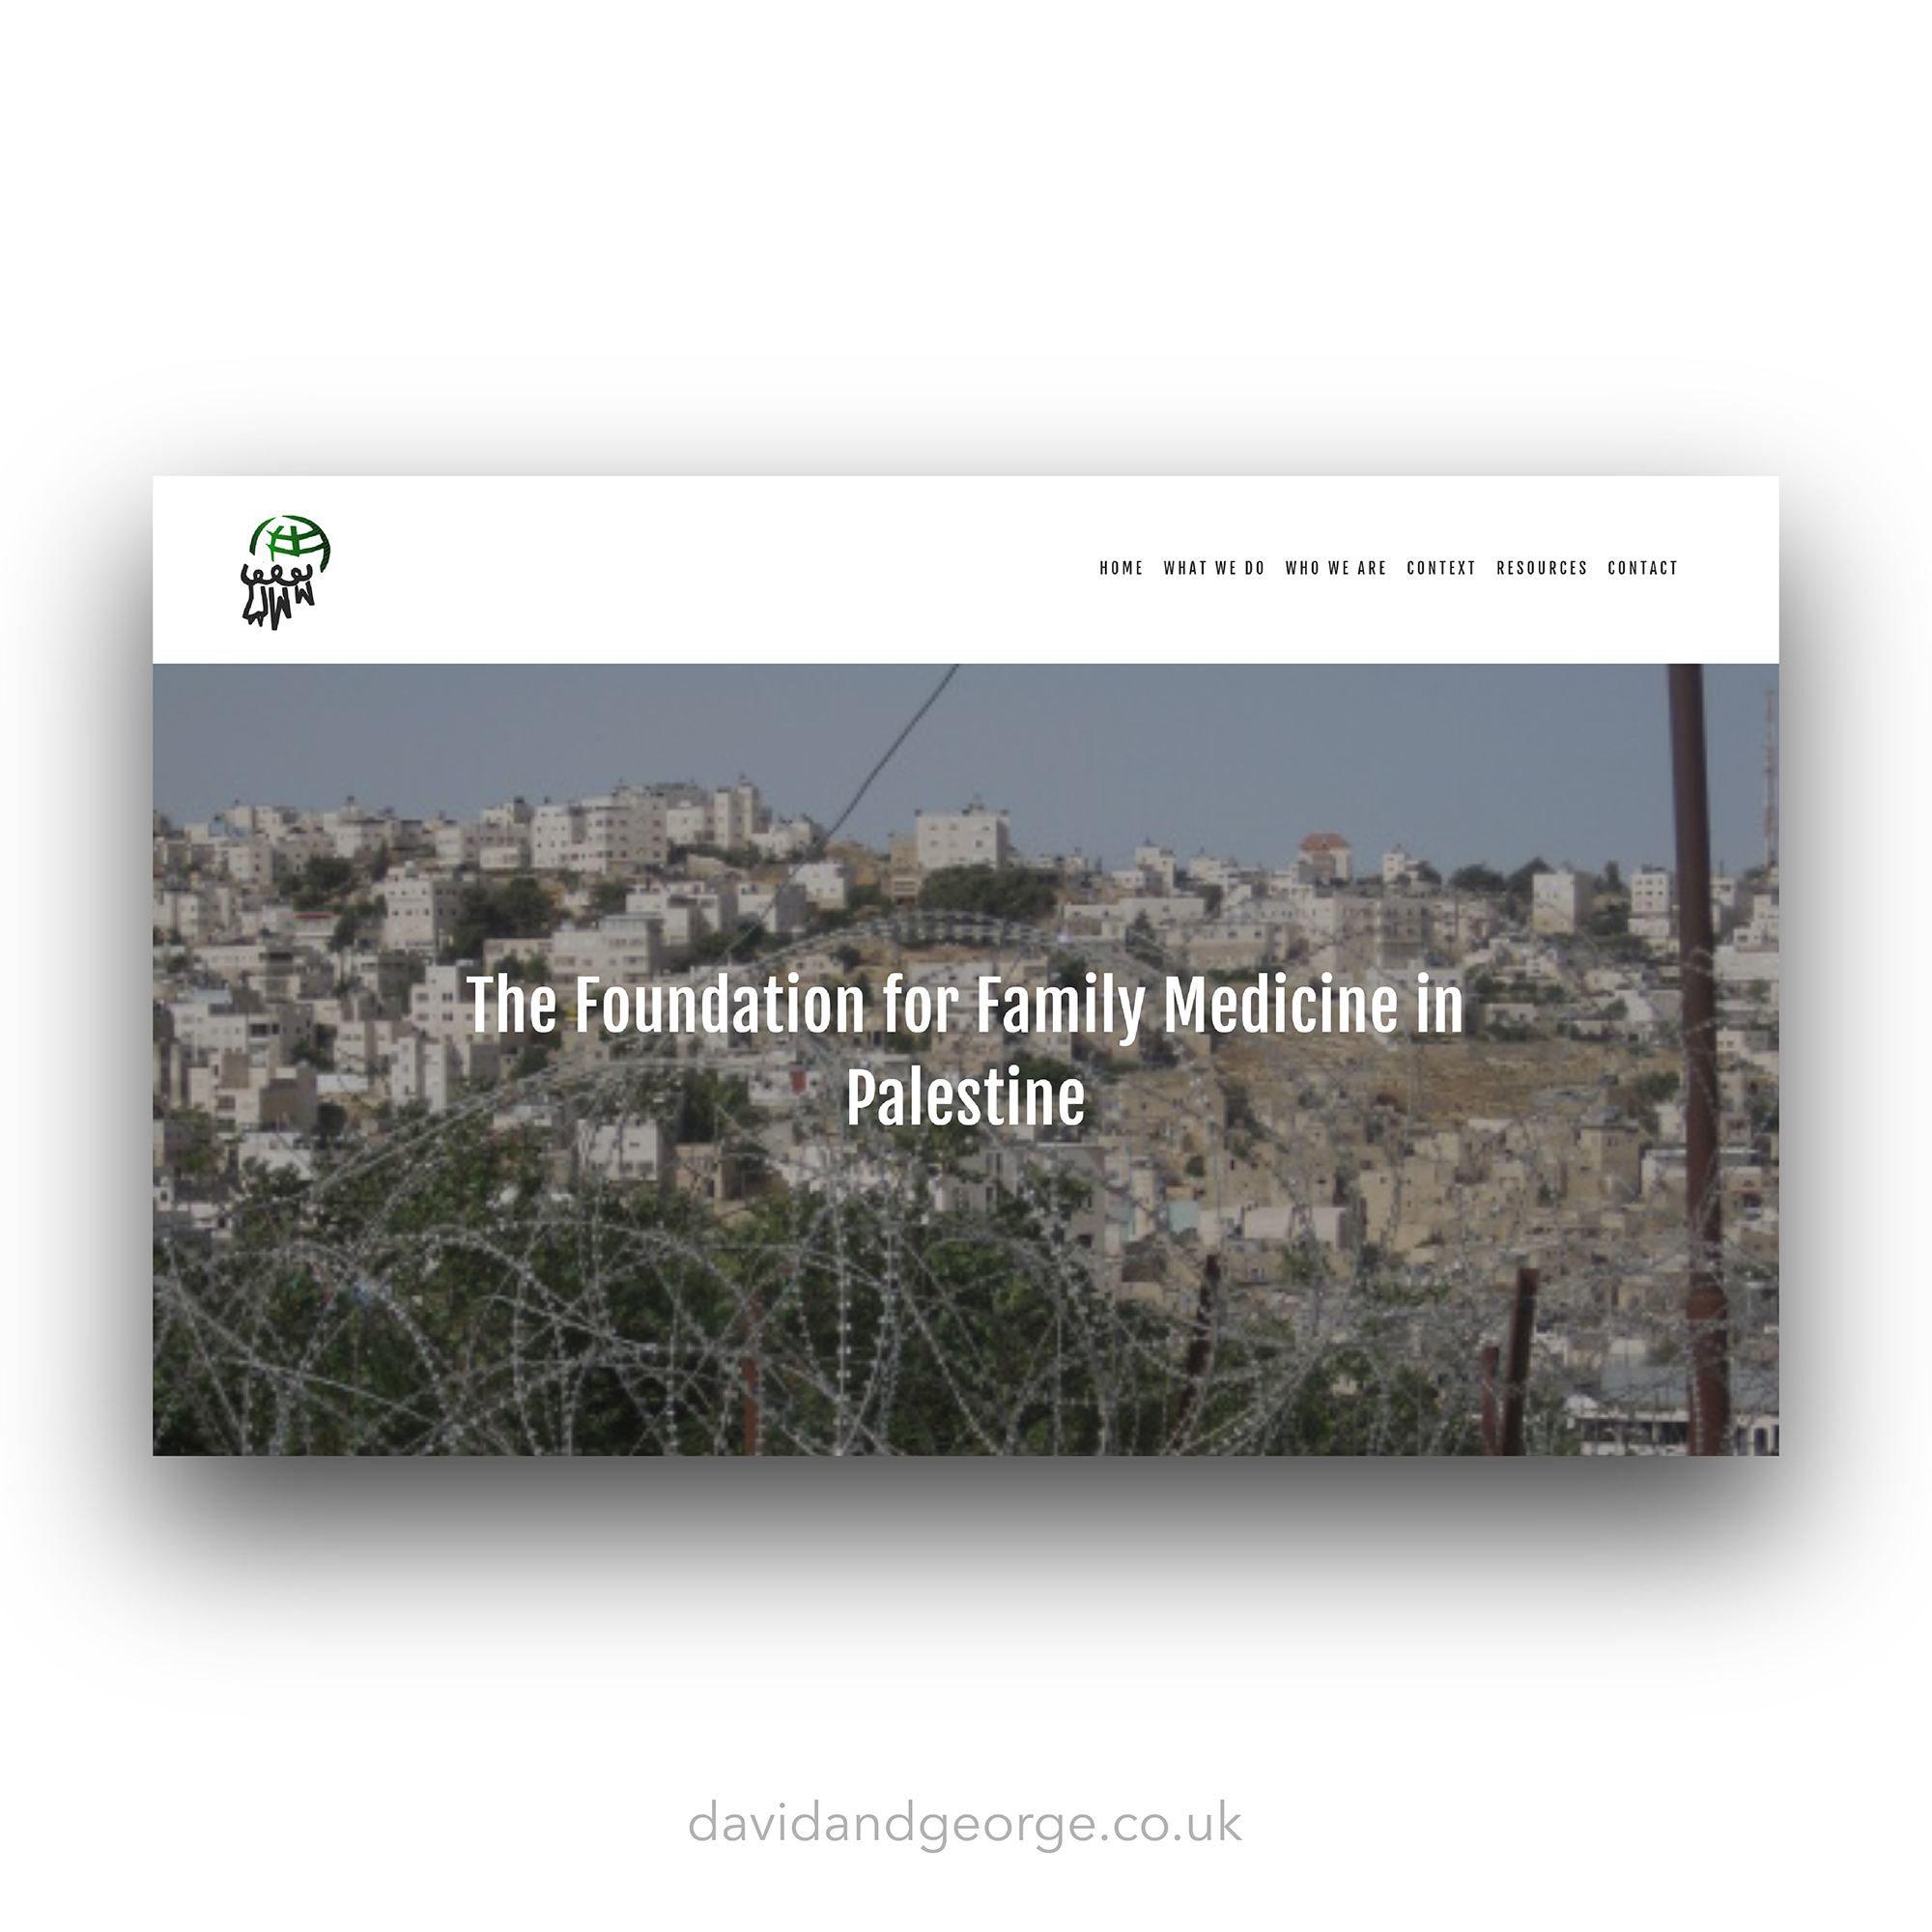 family-medicine-palestine-best-charity-website-examples-organisations-squarespace-designer-uk-09.jpg